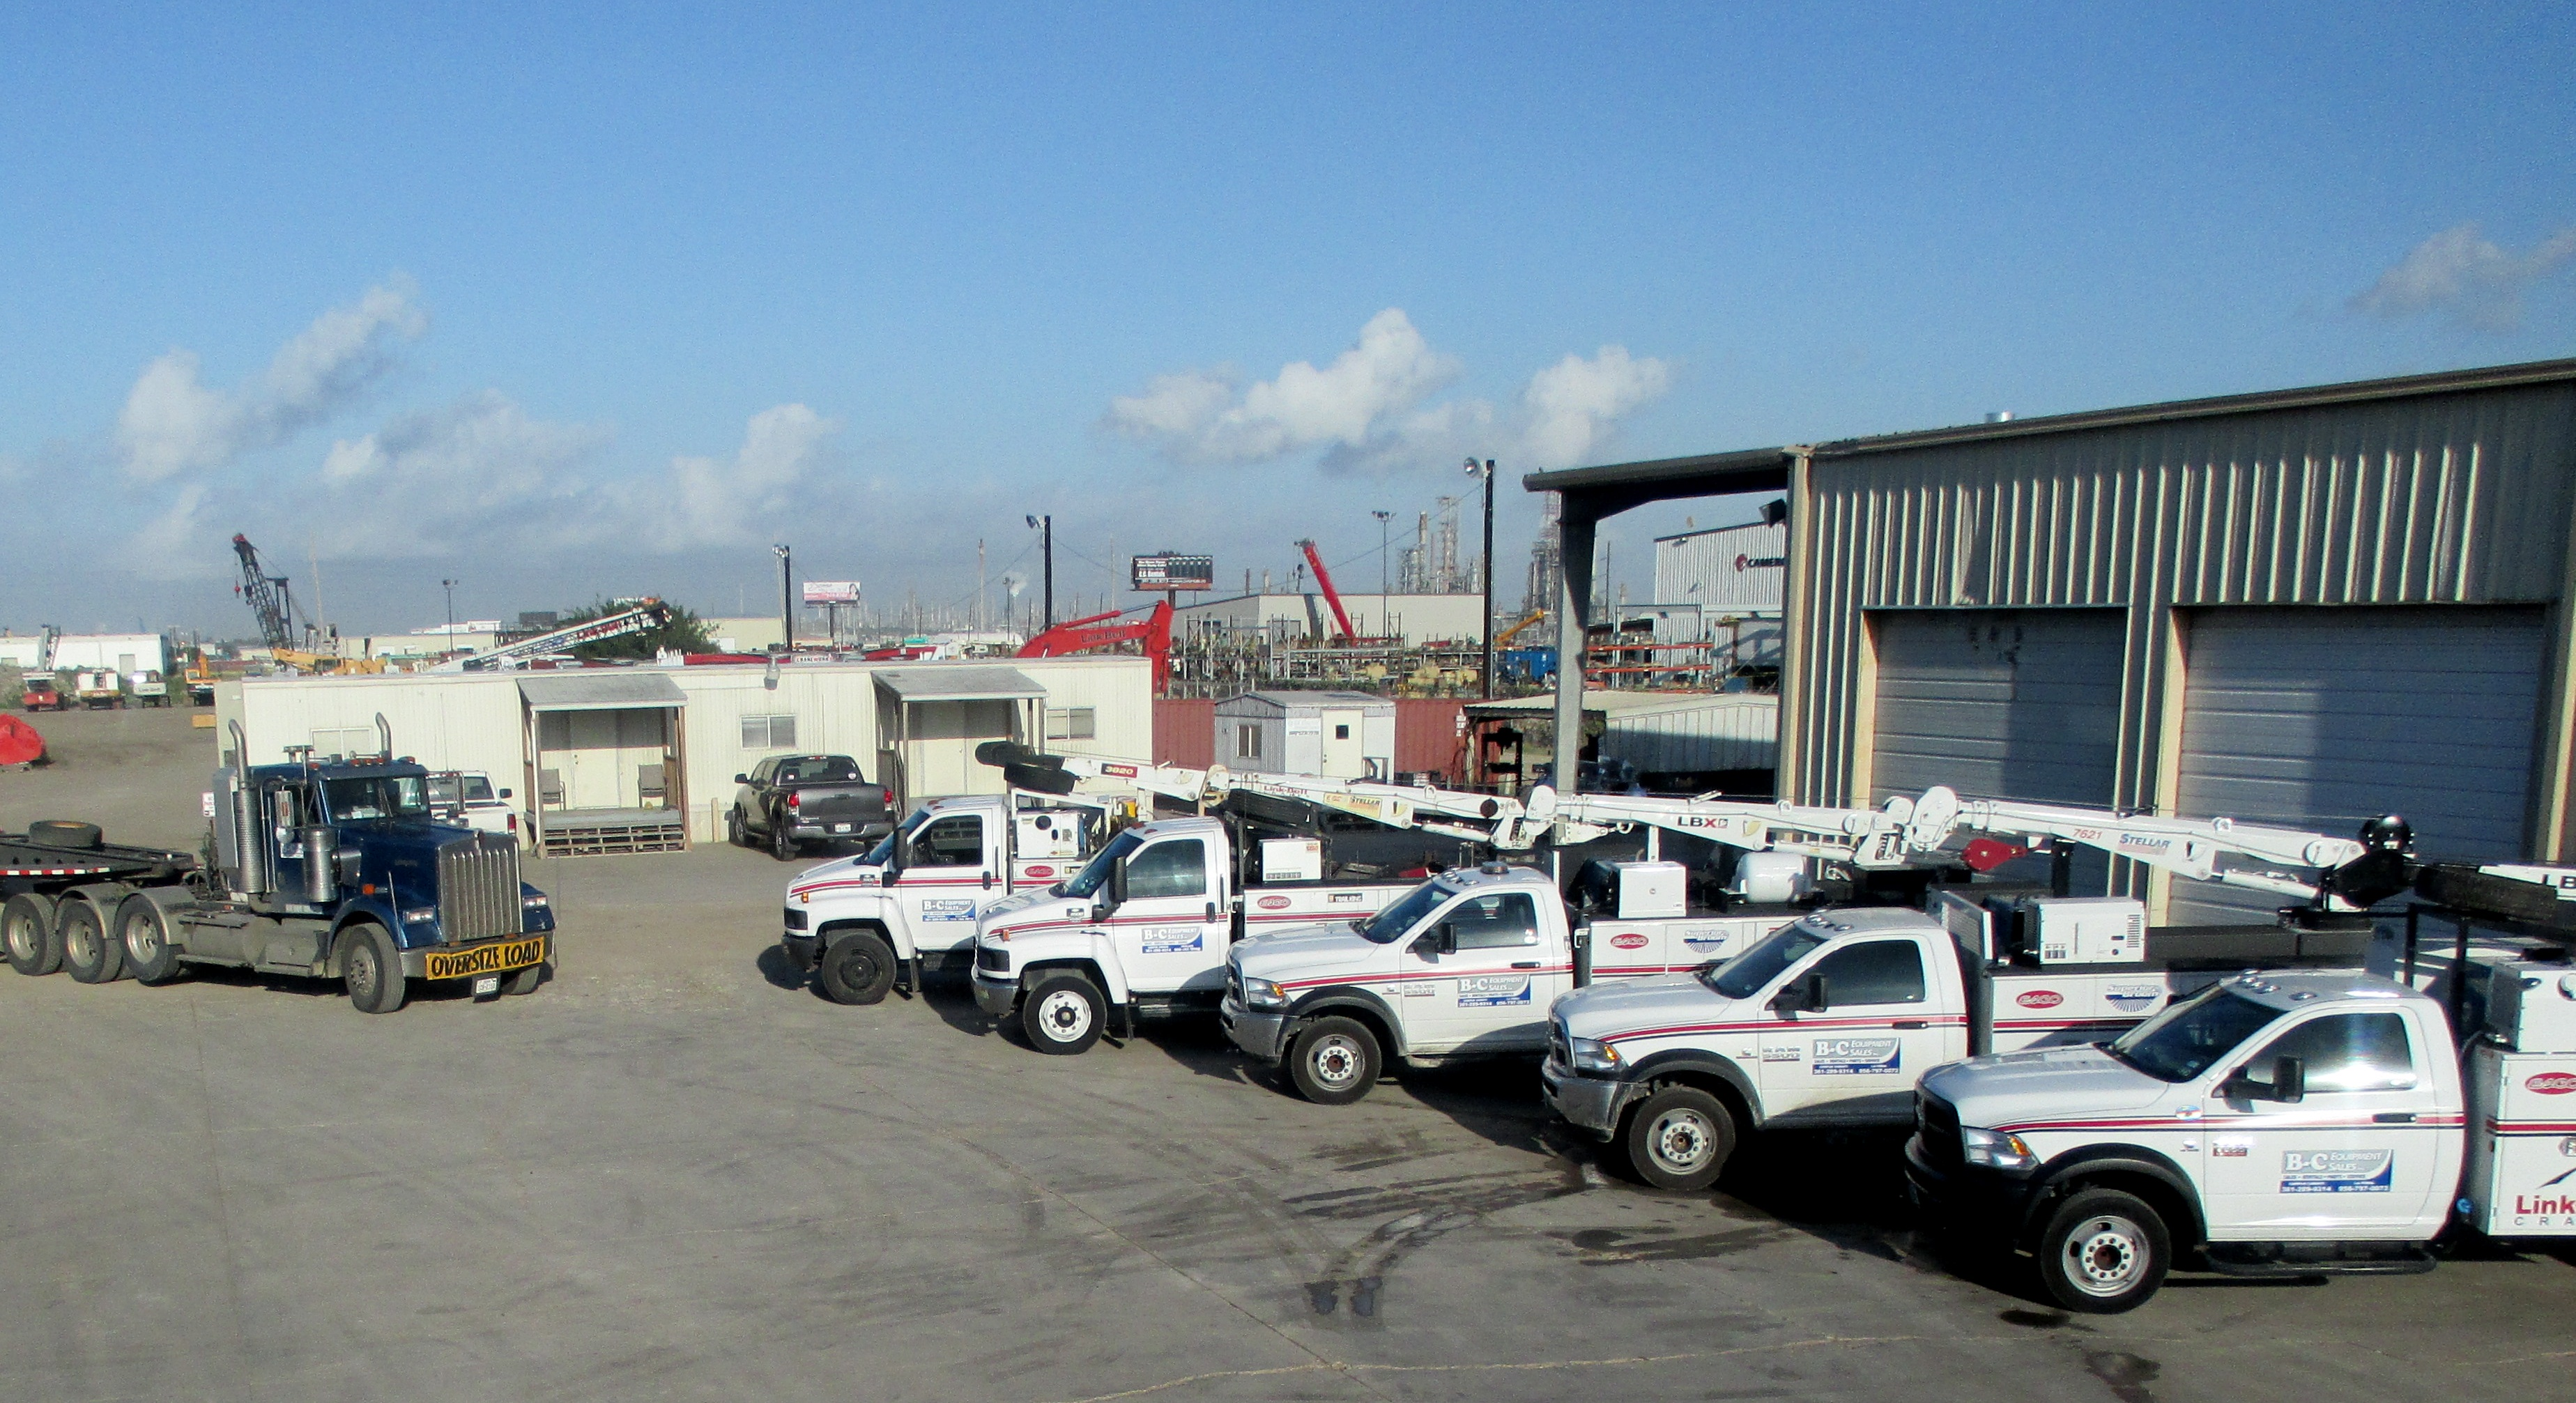 B-C Equipment, Texas locations, carry multiple brands and products.